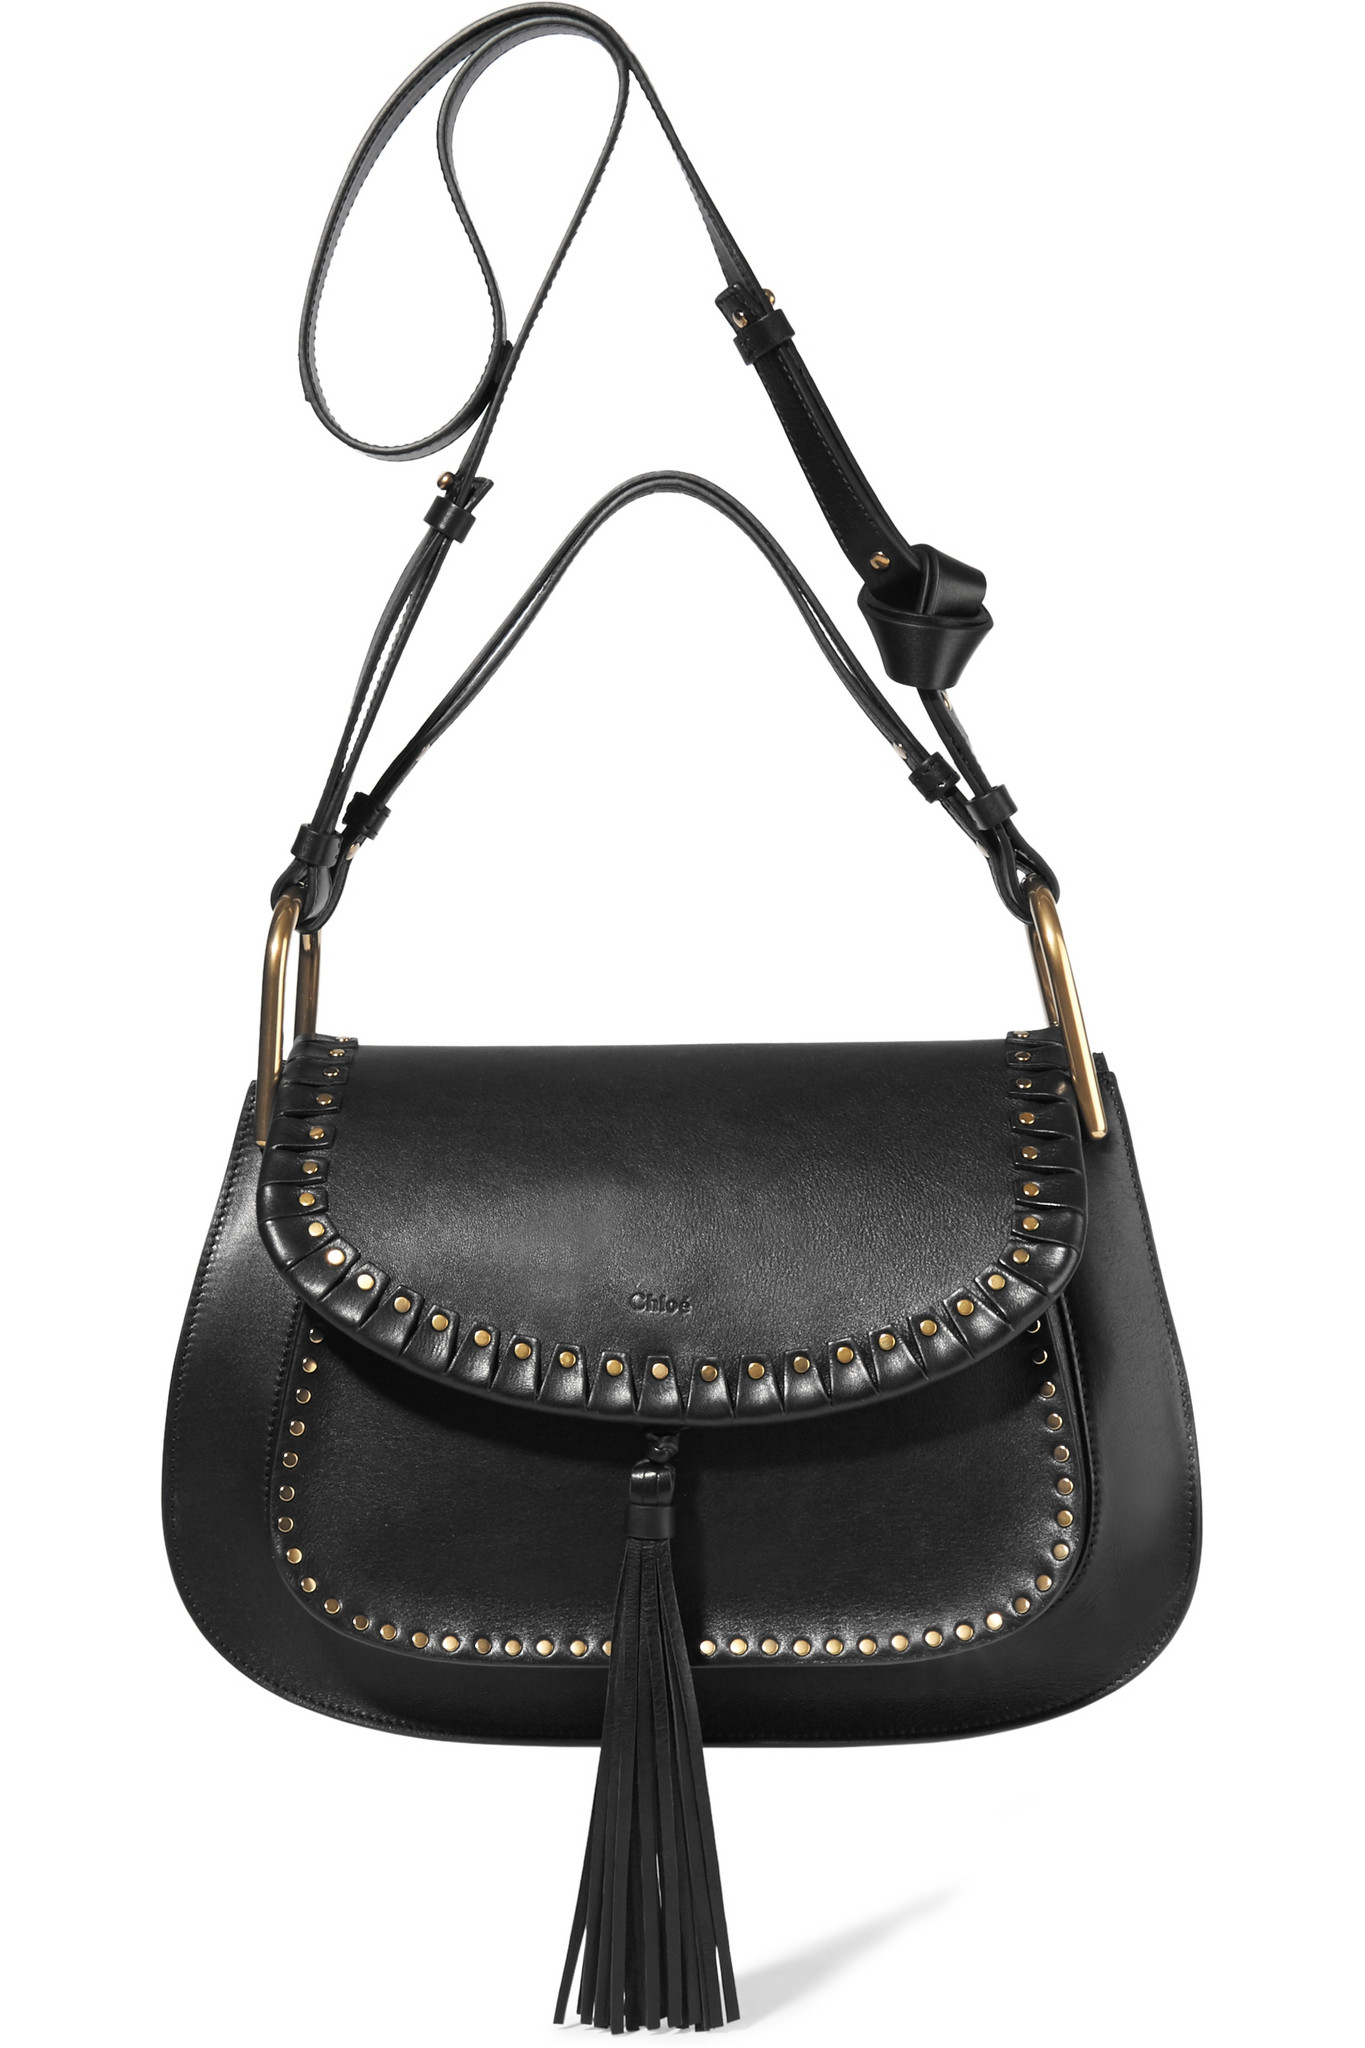 chlo chlo hudson medium studded leather shoulder bag in black lyst. Black Bedroom Furniture Sets. Home Design Ideas